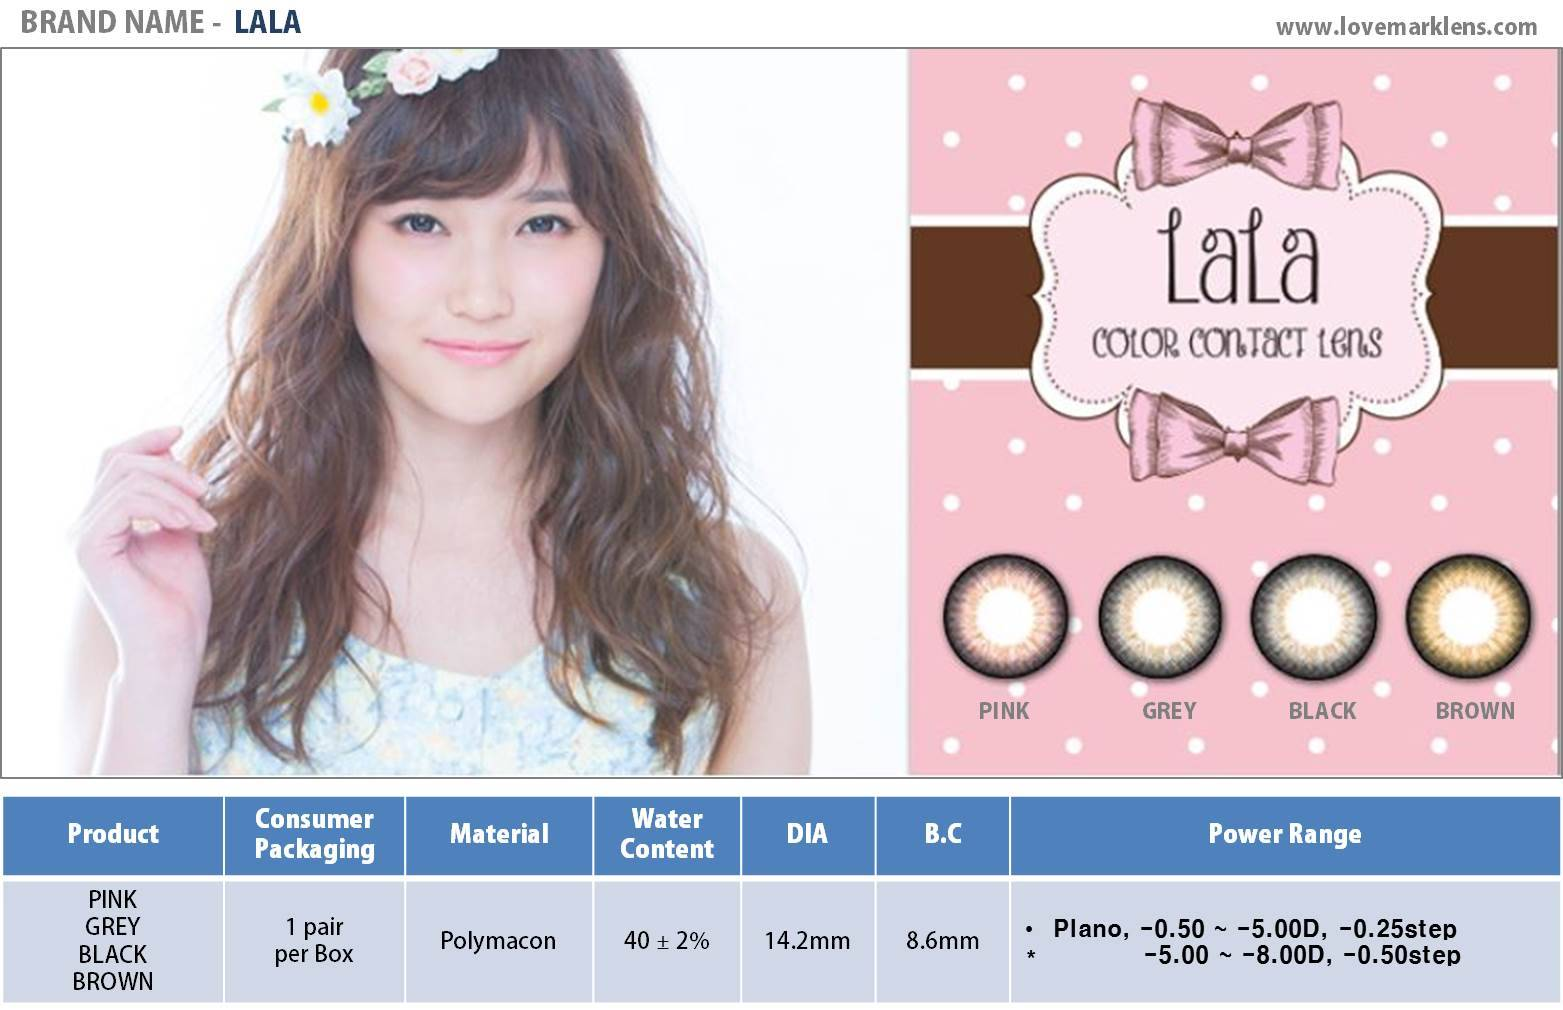 LALA Color Contact Lens